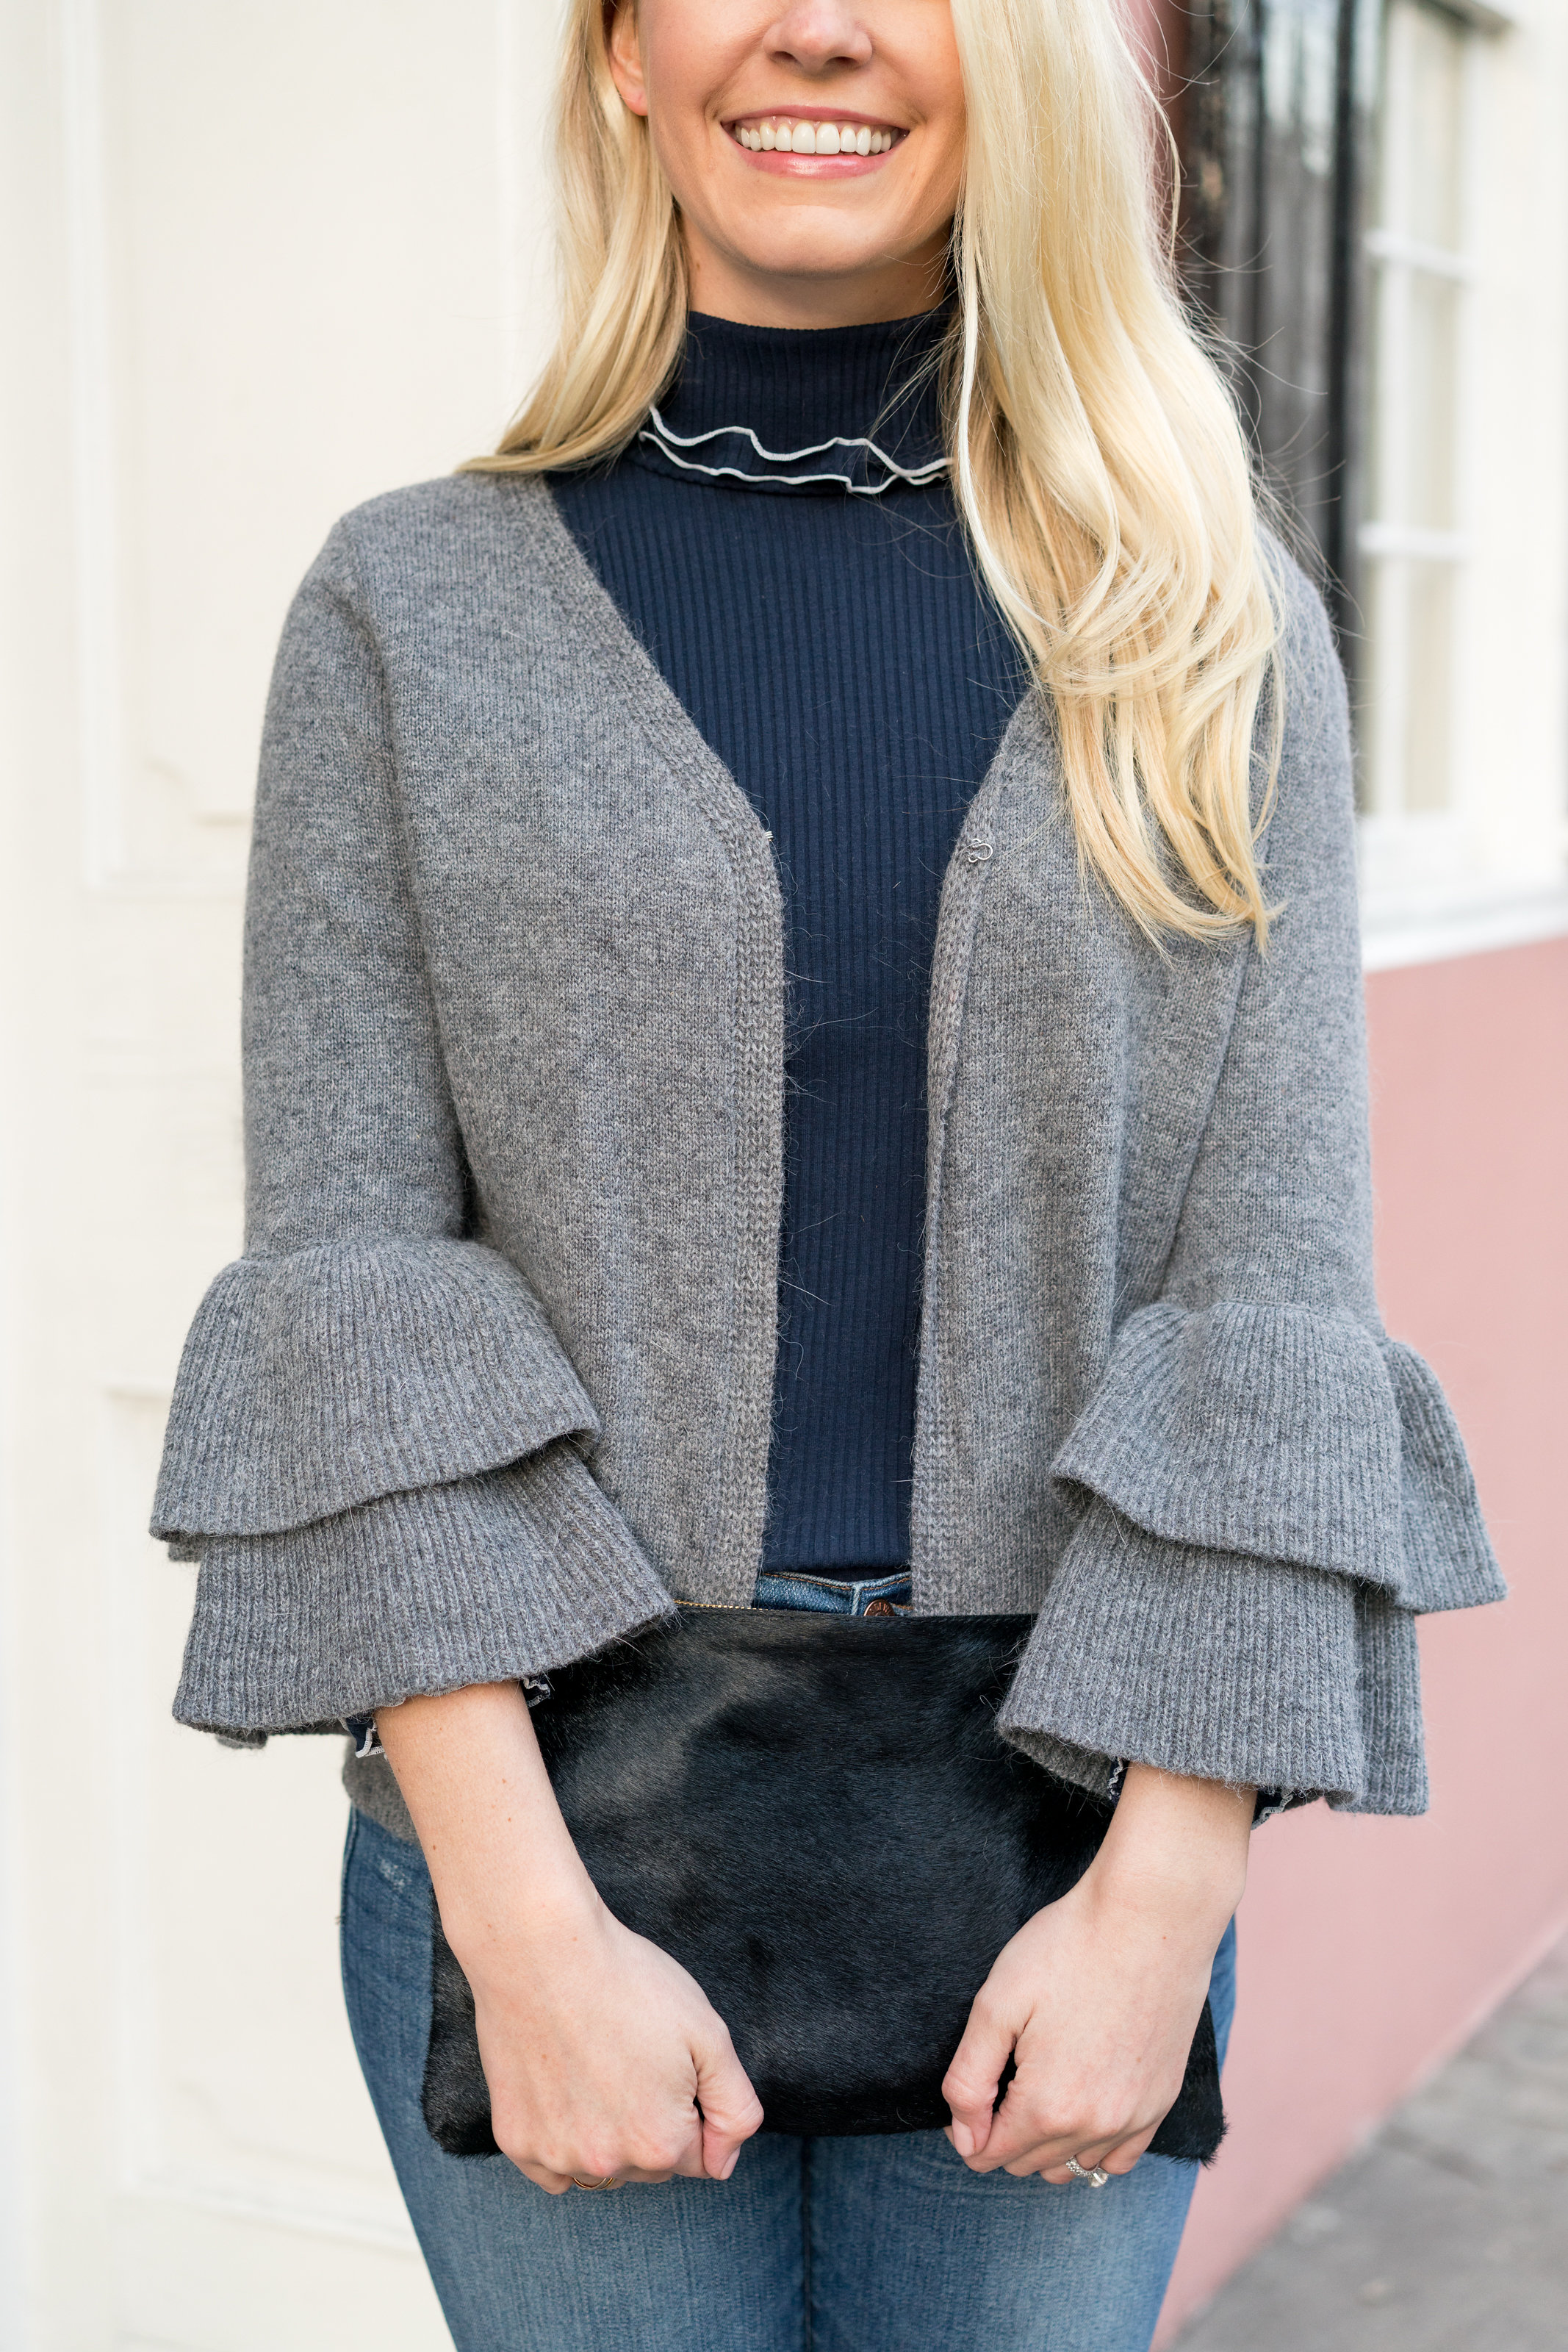 The perfect layering piece for winter going into spring: a ruffle sleeve cardigan // Rhyme & Reason